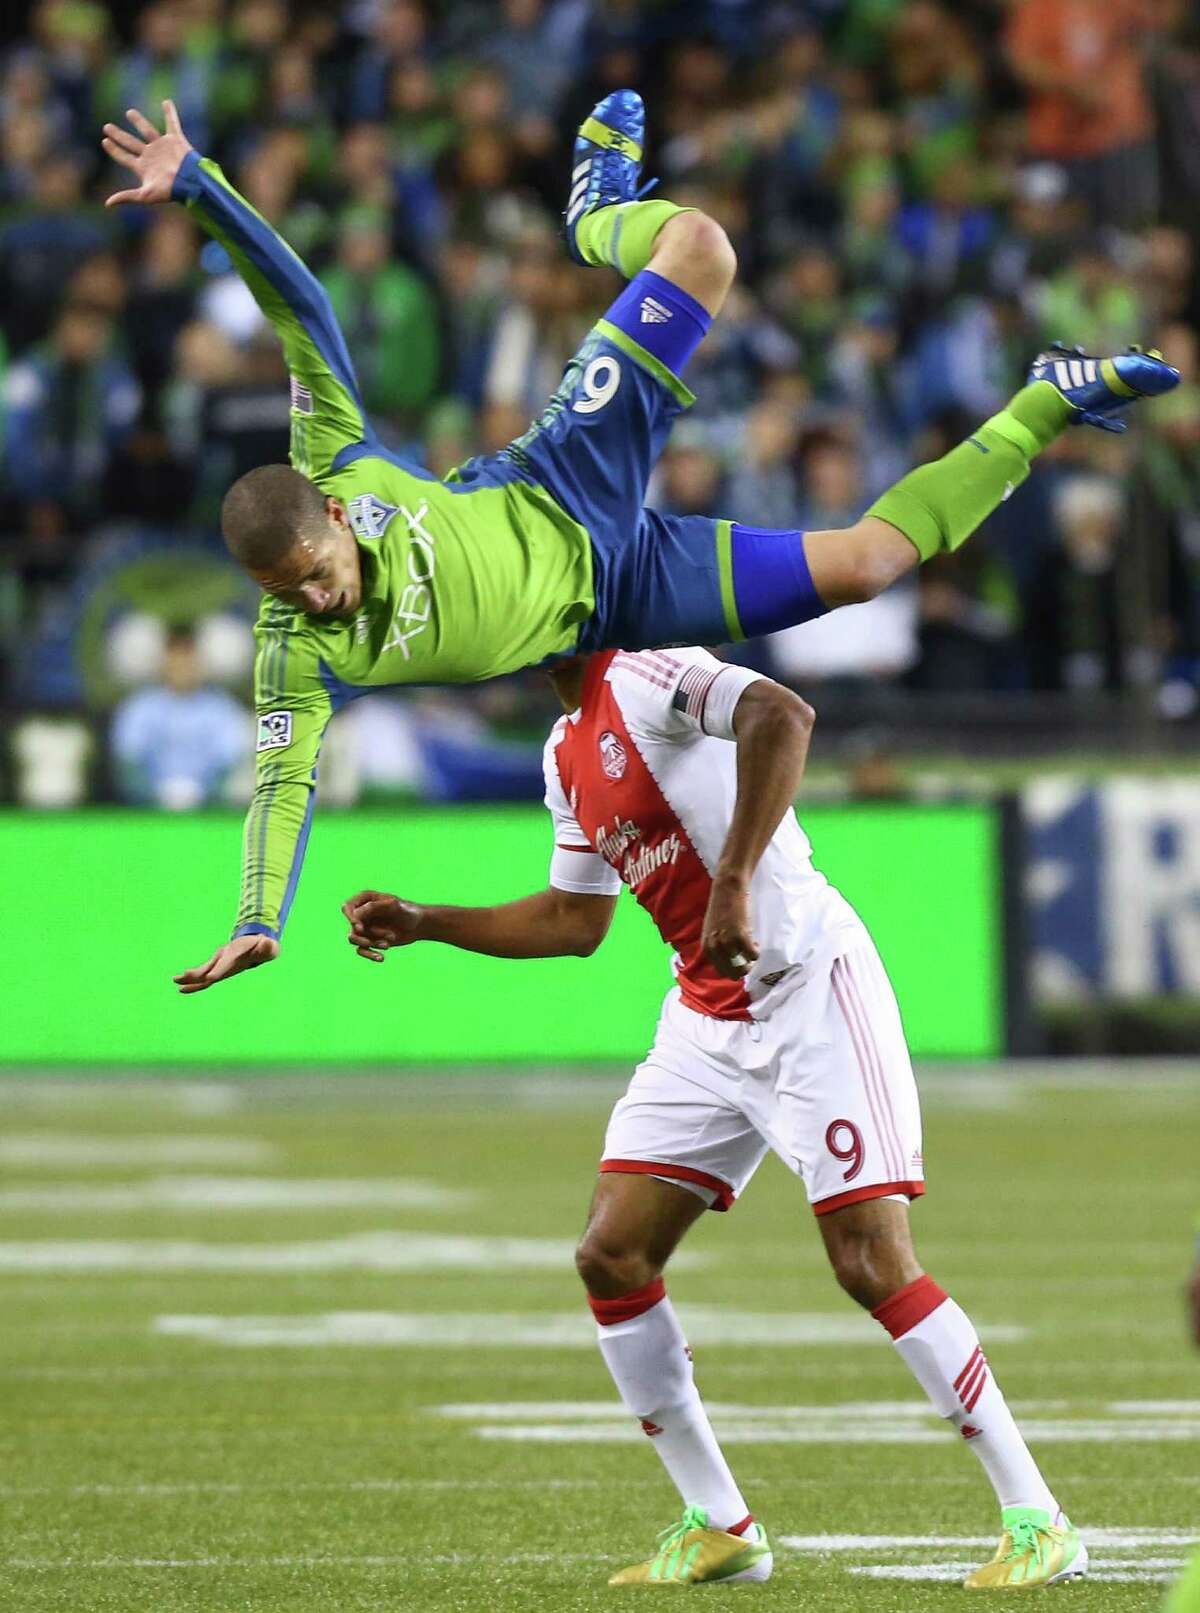 Seattle Sounders player Osvaldo Alonso is upended by Portland Timbers player Ryan Johnson during an MLS playoff match between the two Pacific Northwest rivals. The Sounders fell to the Timbers 2-1.